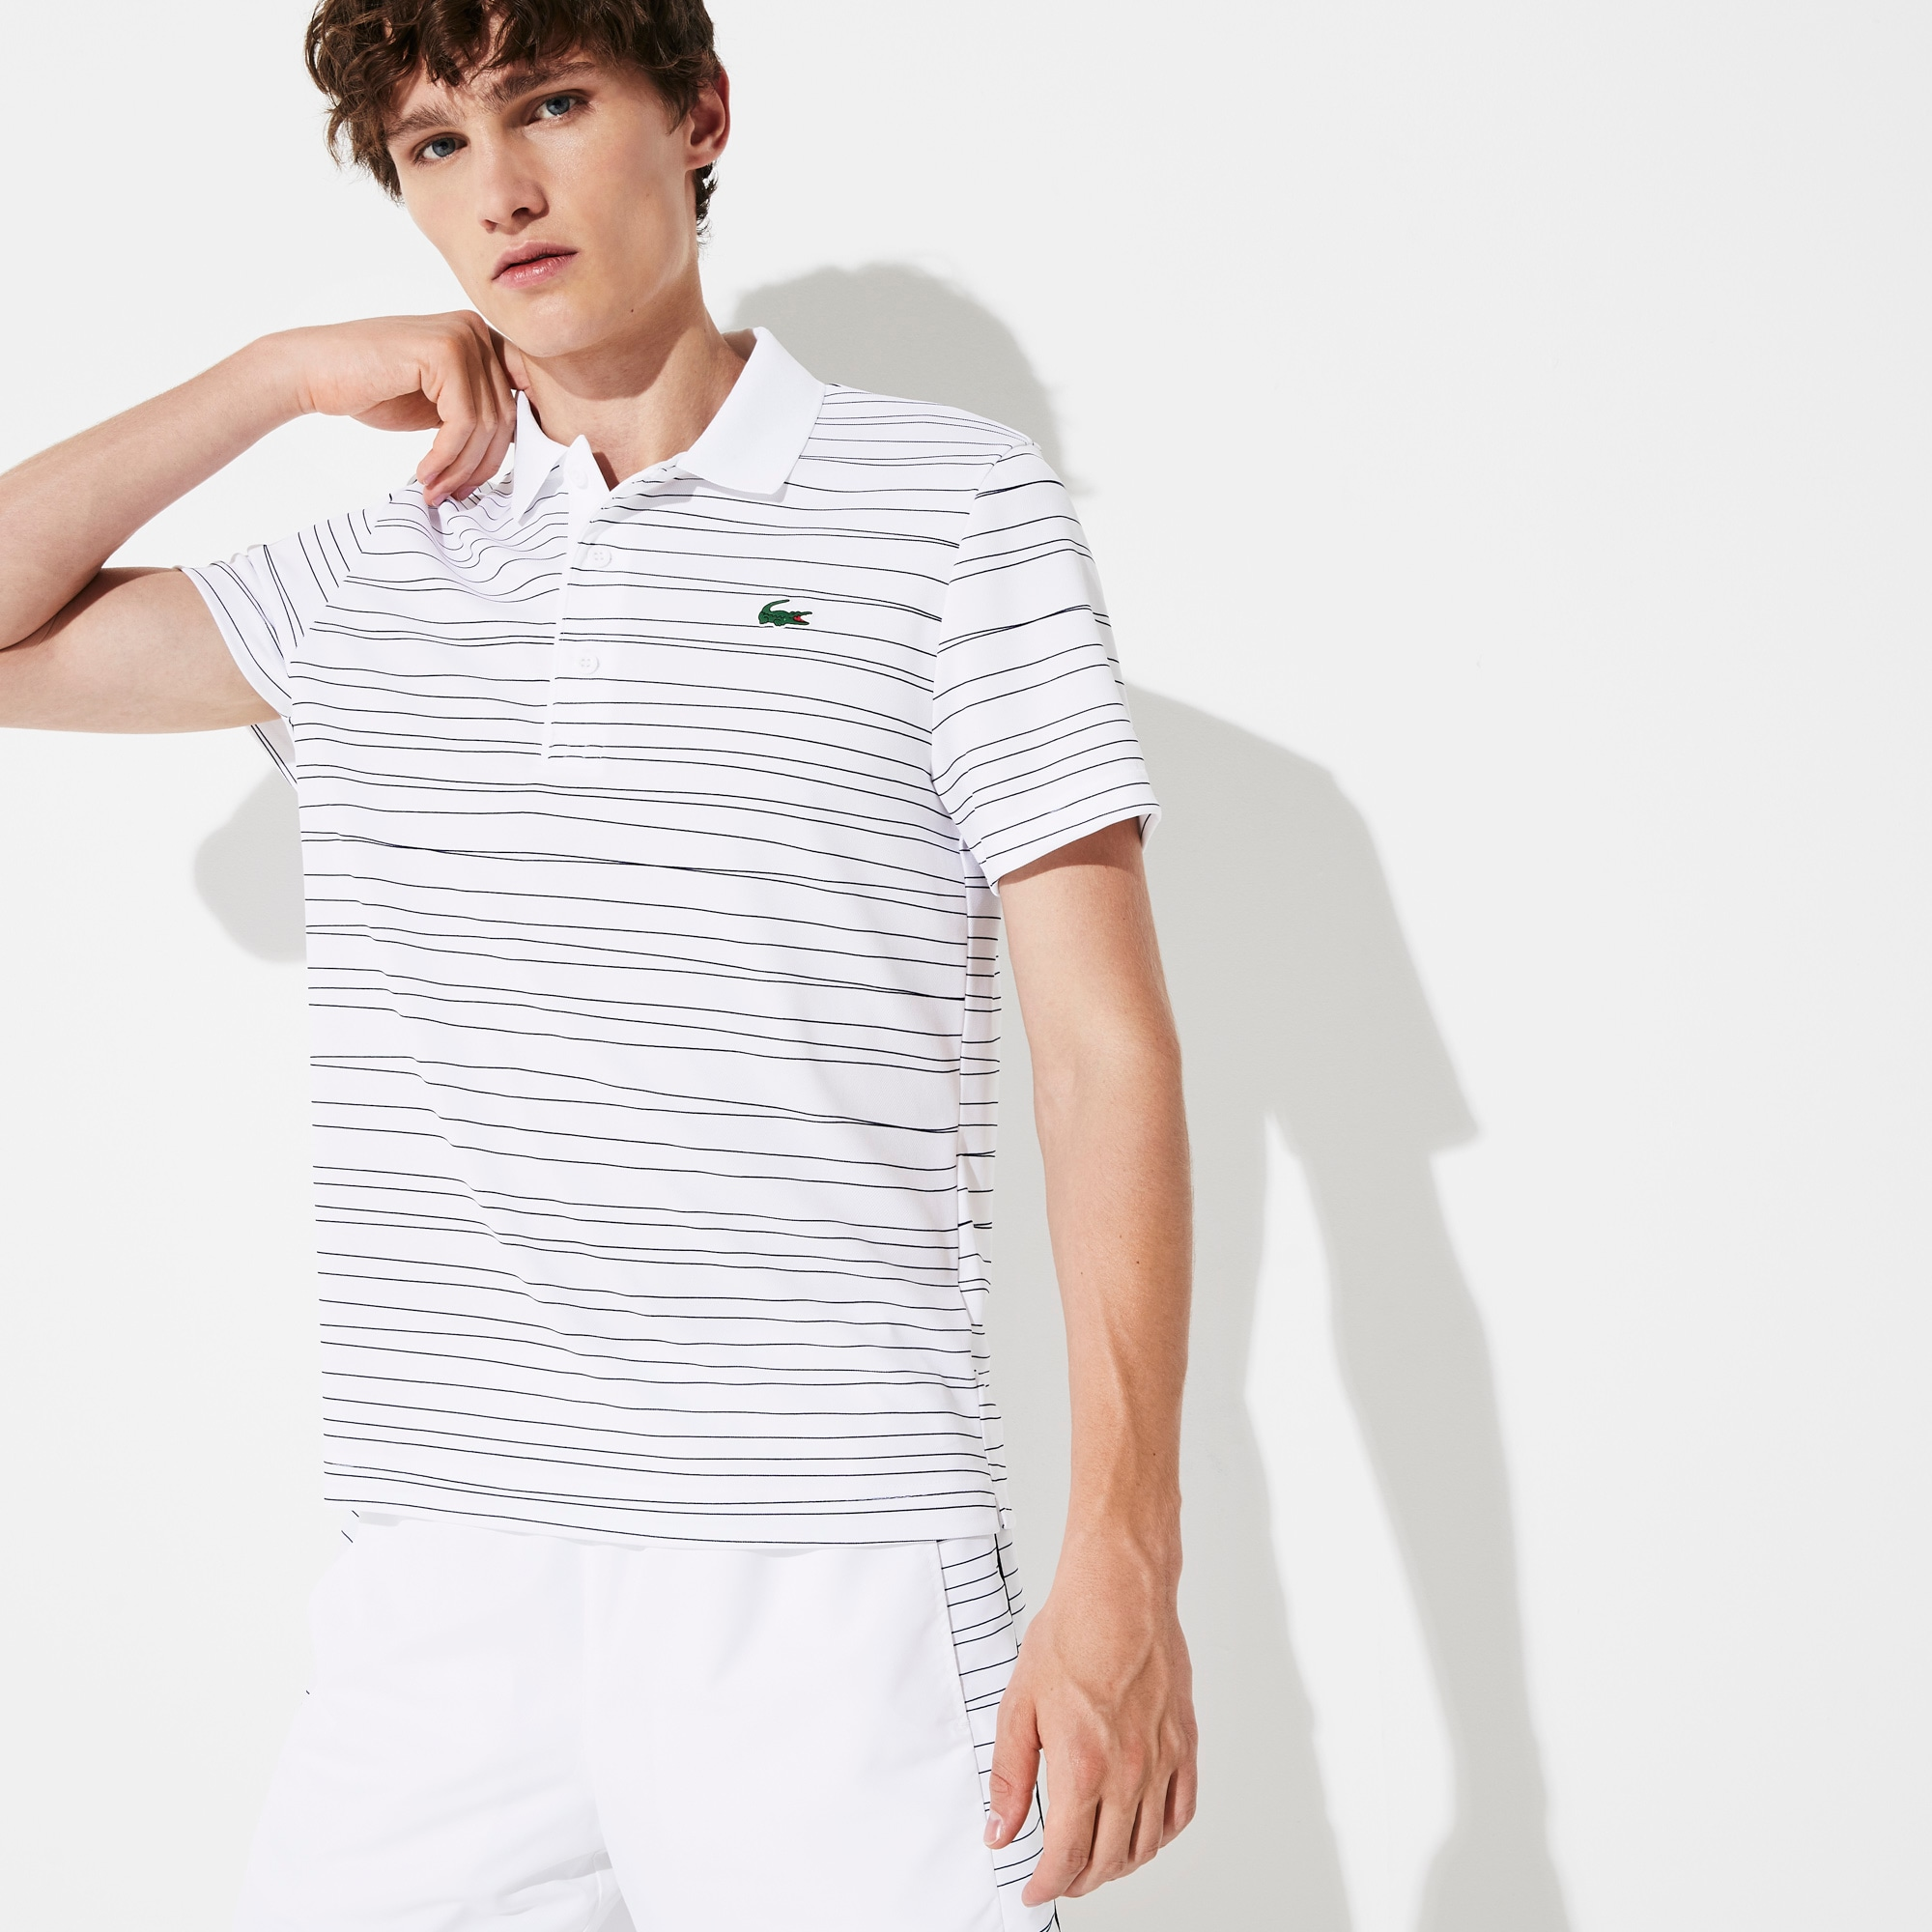 라코스테 Lacoste Mens SPORT Striped Breathable Pique Tennis Polo,White / Navy Blue - AJ0